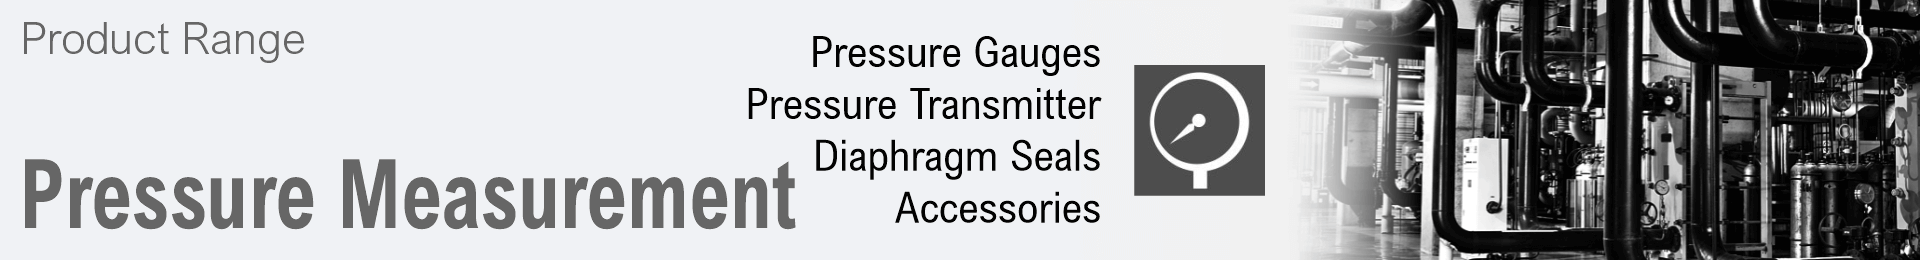 Product range Pressure Measurement: Transmitter, Pressure Gauges, Pressure Switches, Diaphragm Seals, Accessories